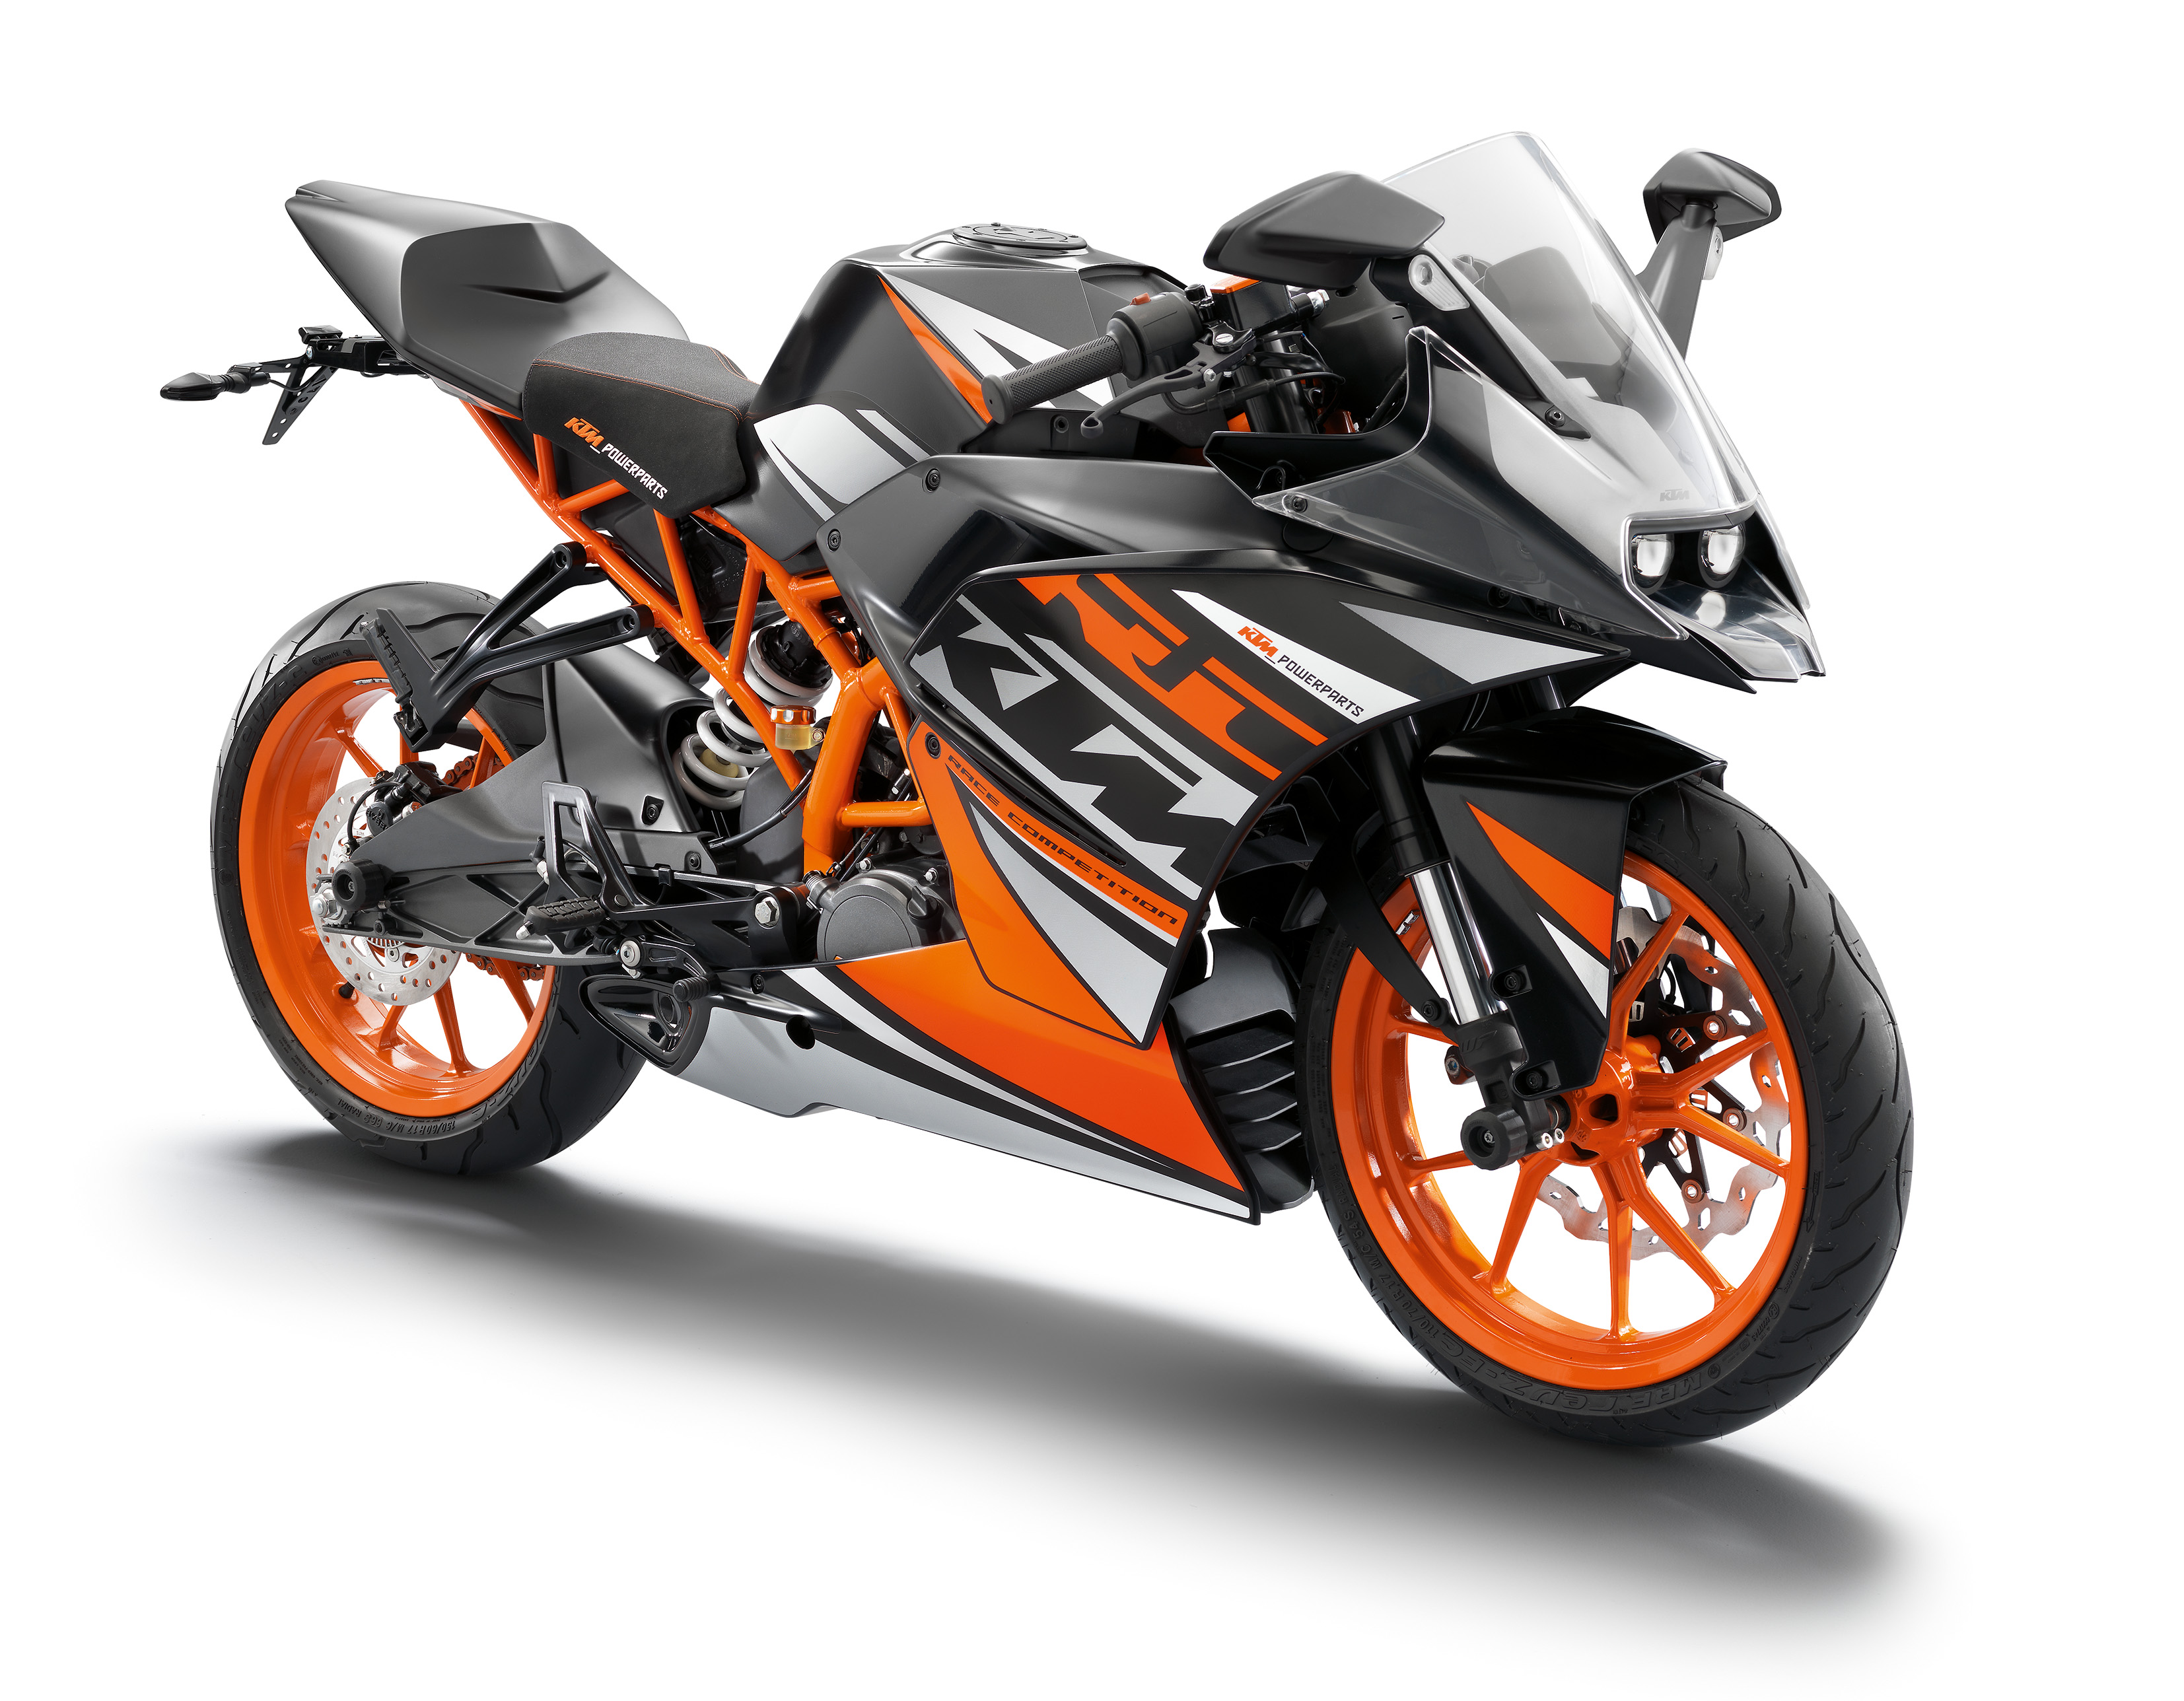 ktm bikes images 47 - photo #4